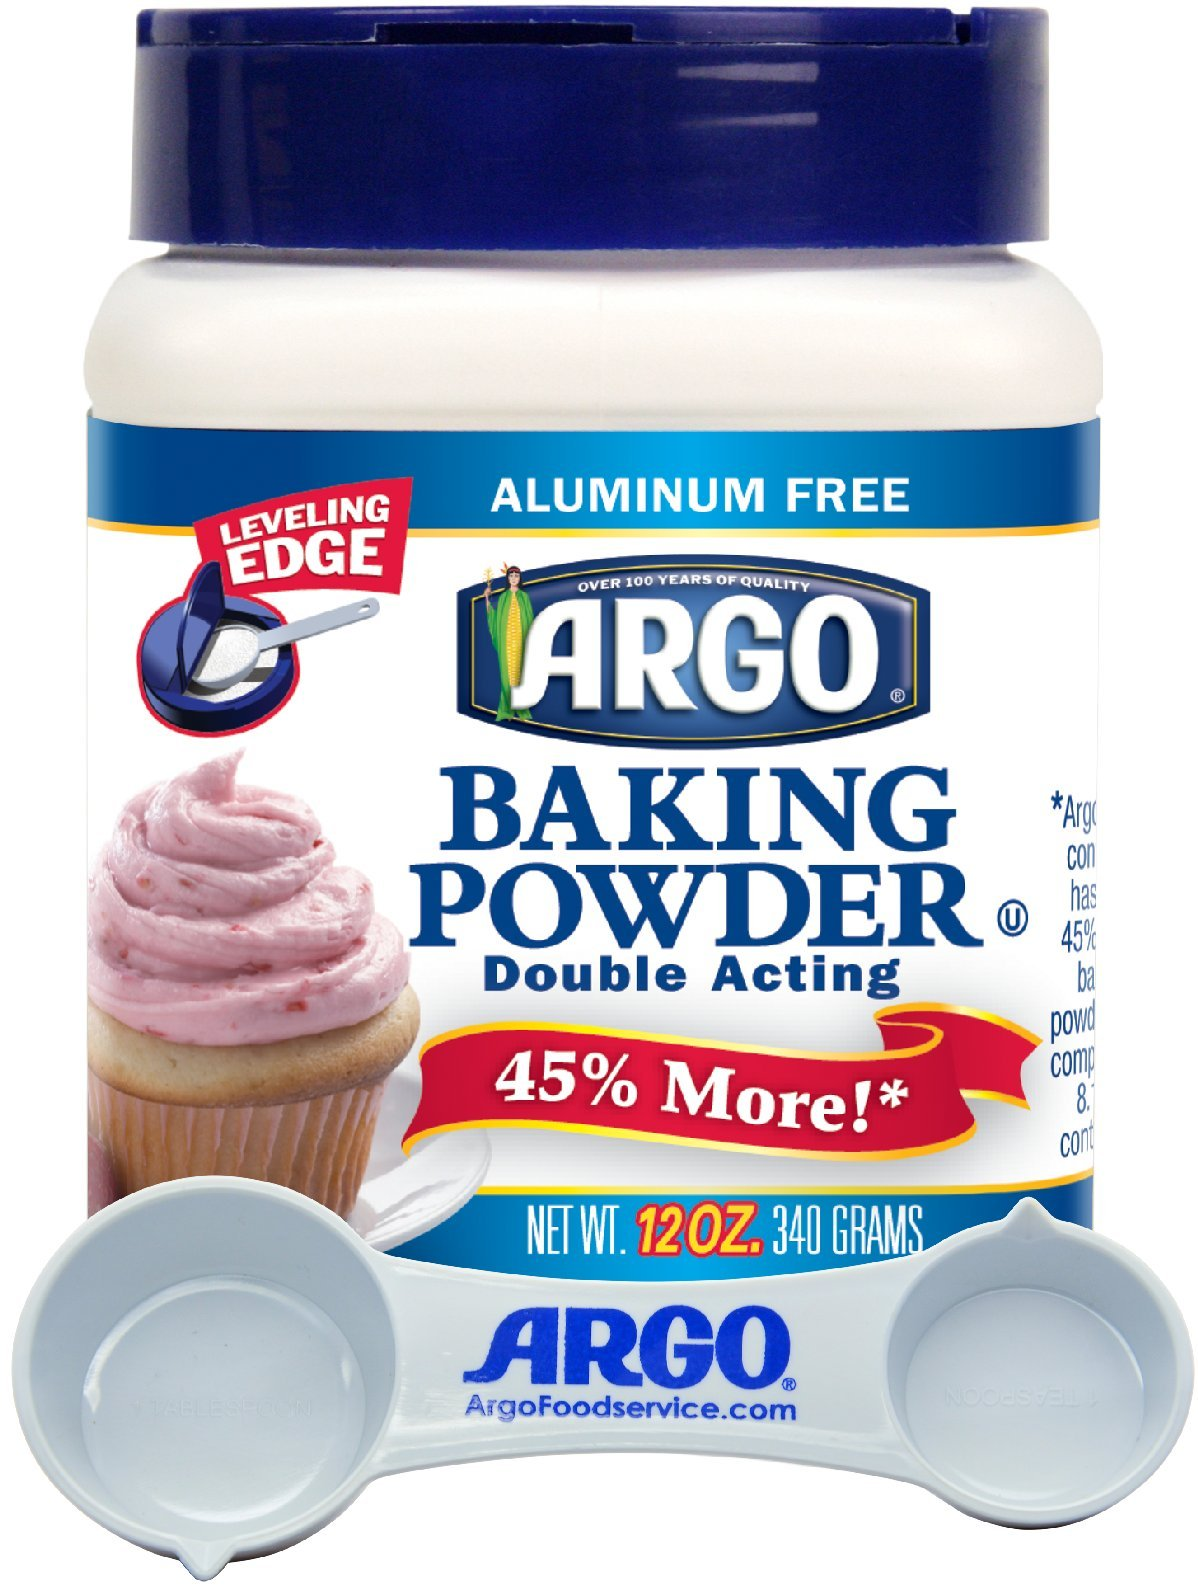 Argo - Double Acting, Aluminum Free Baking Powder, 12 Ounce Resealable Plastic Container - with Argo Measuring Spoon